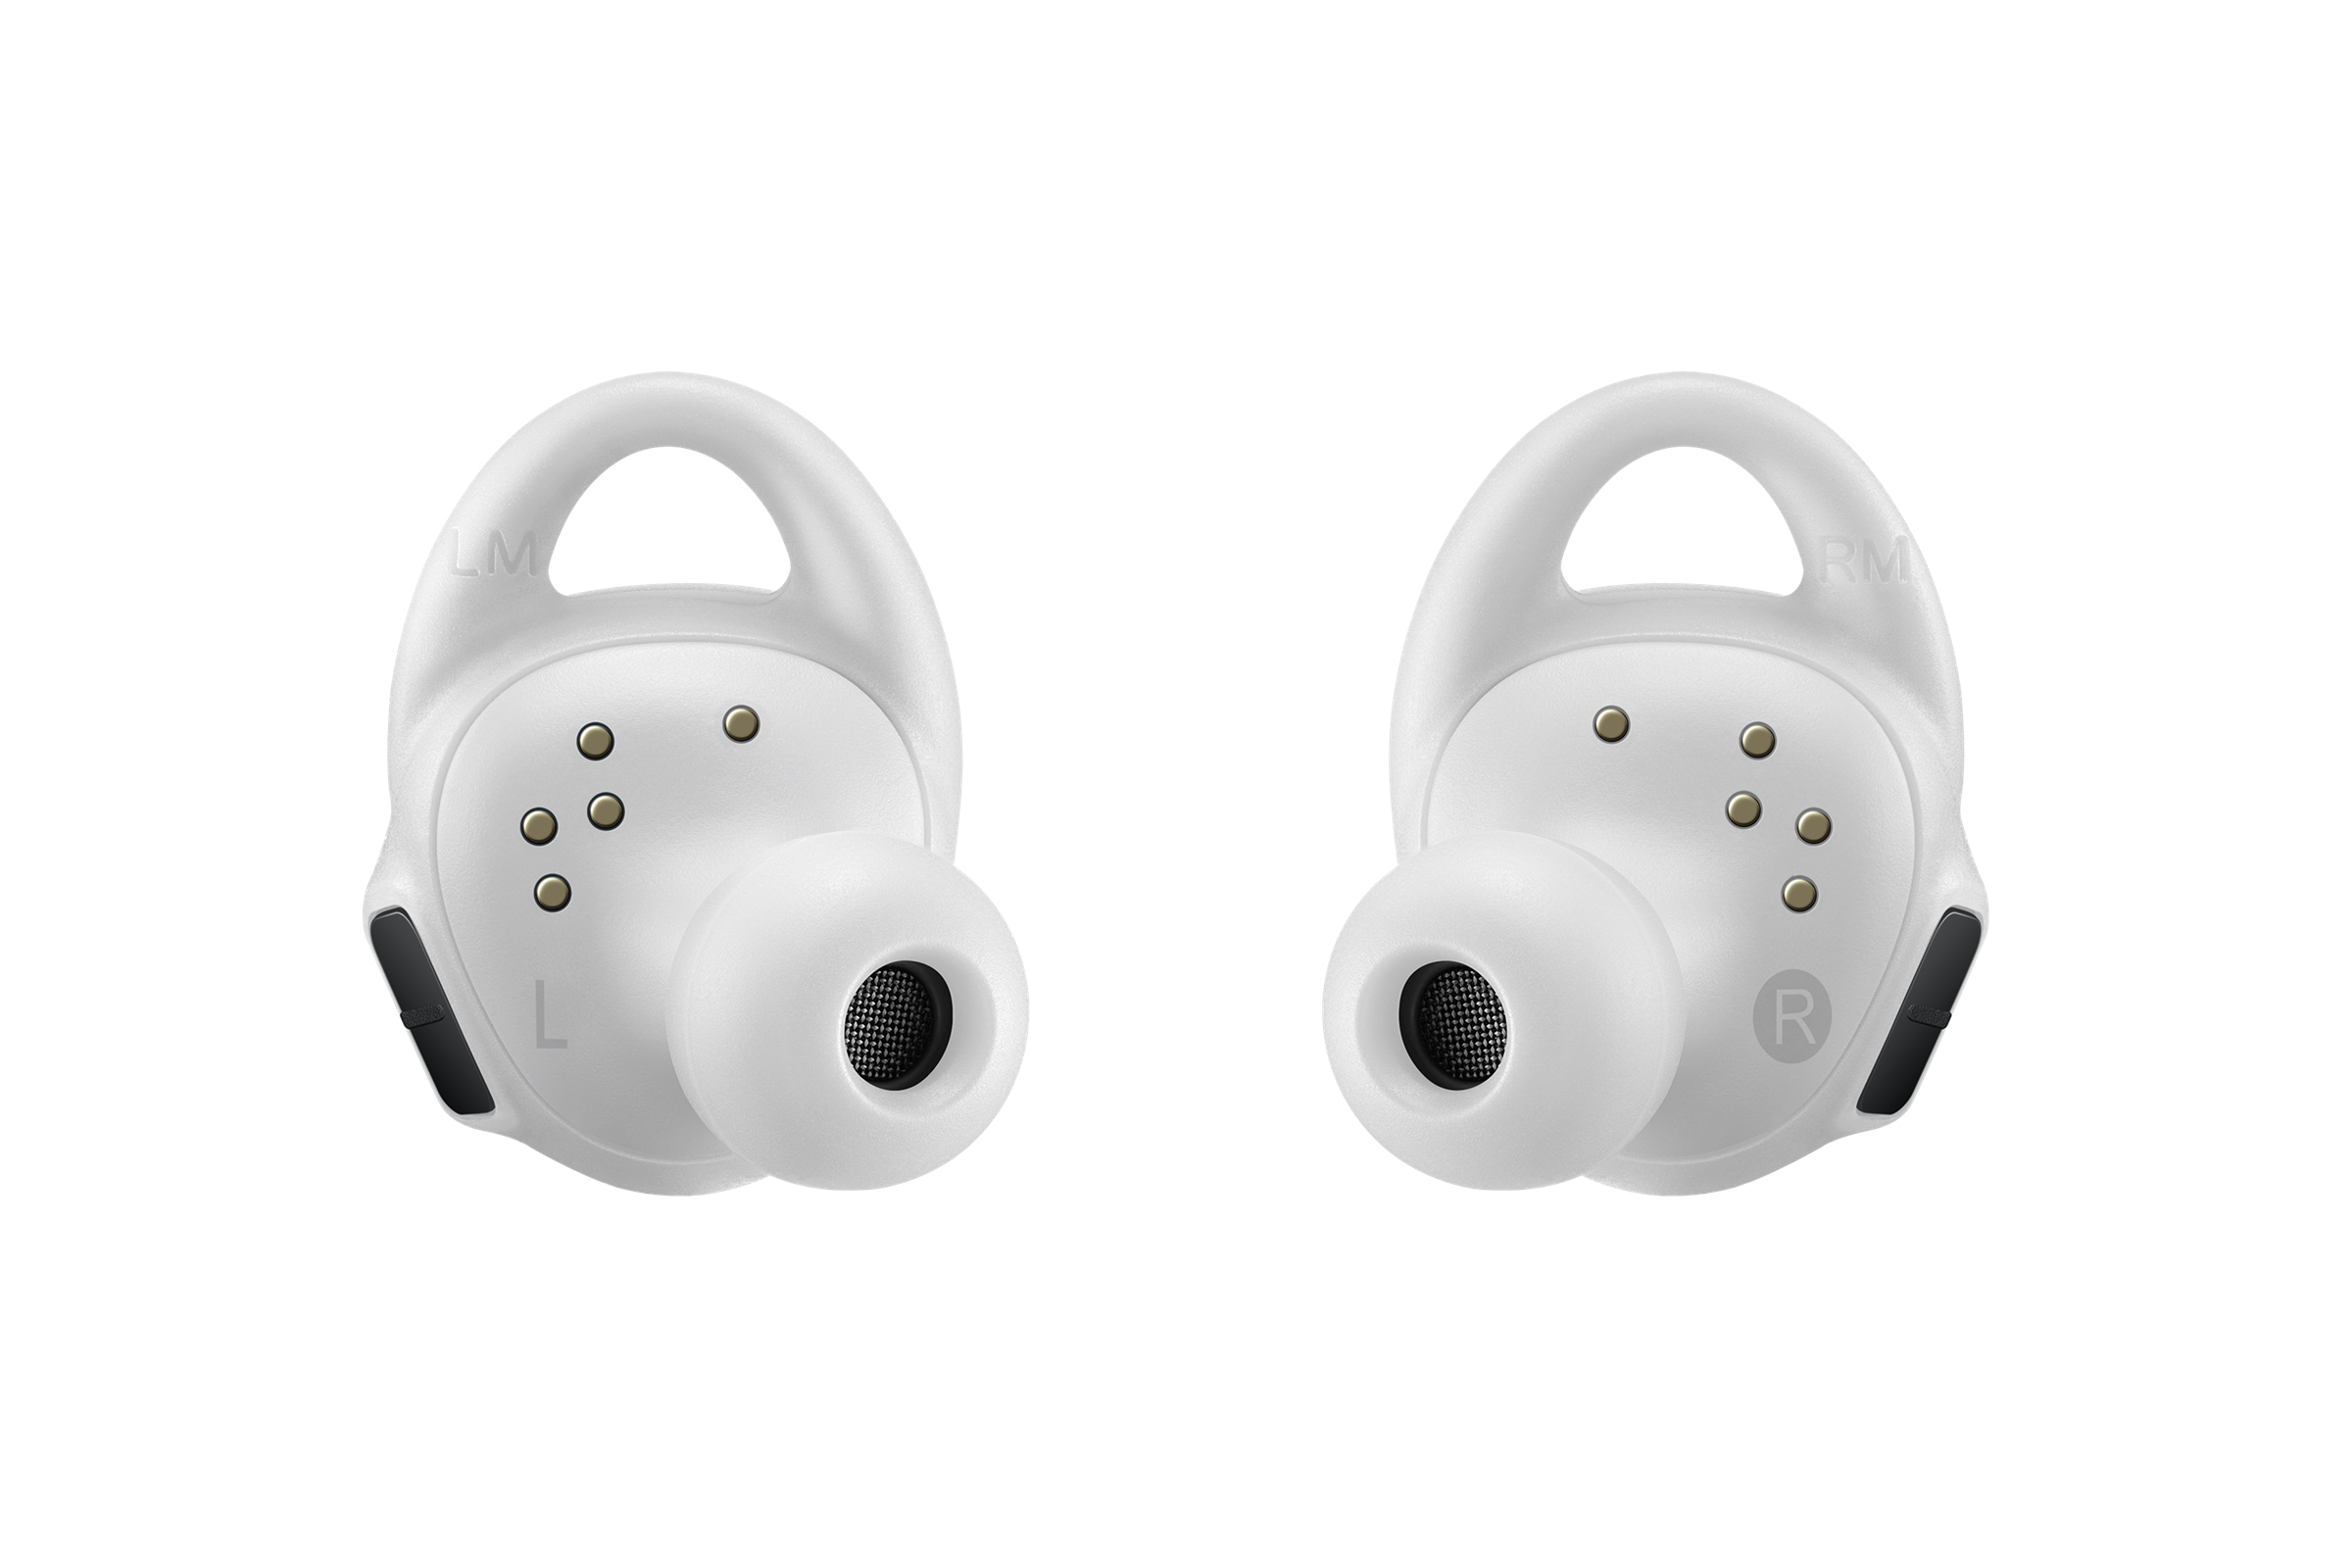 Samsung S Now Selling The First Generation Gear Iconx For Just 49 99 Sammobile Sammobile